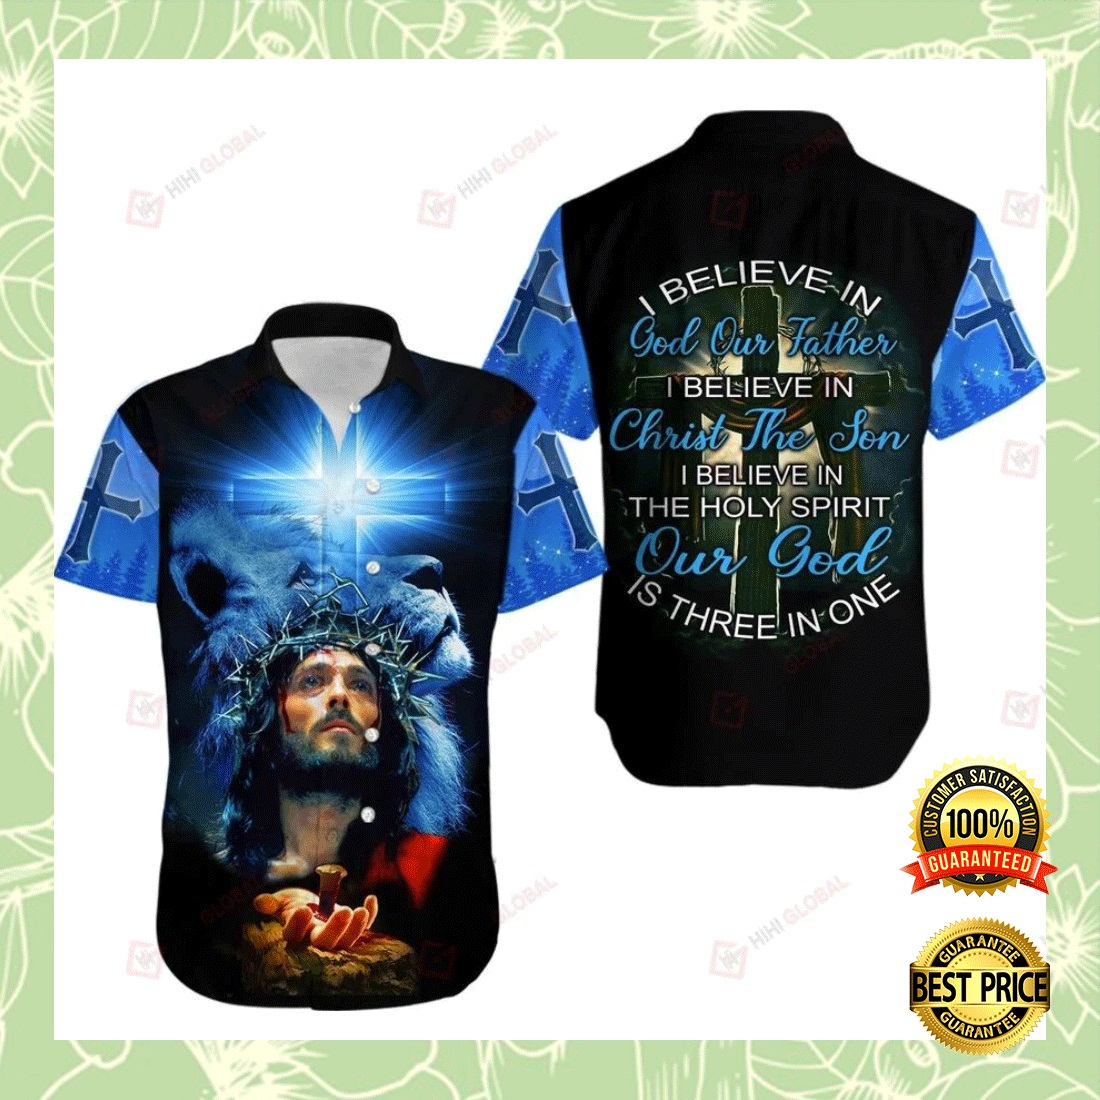 I BELIEVE IN GOD OUR FATHER I BELIEVE IN CHRIST THE SON HAWAIIAN SHIRT 5